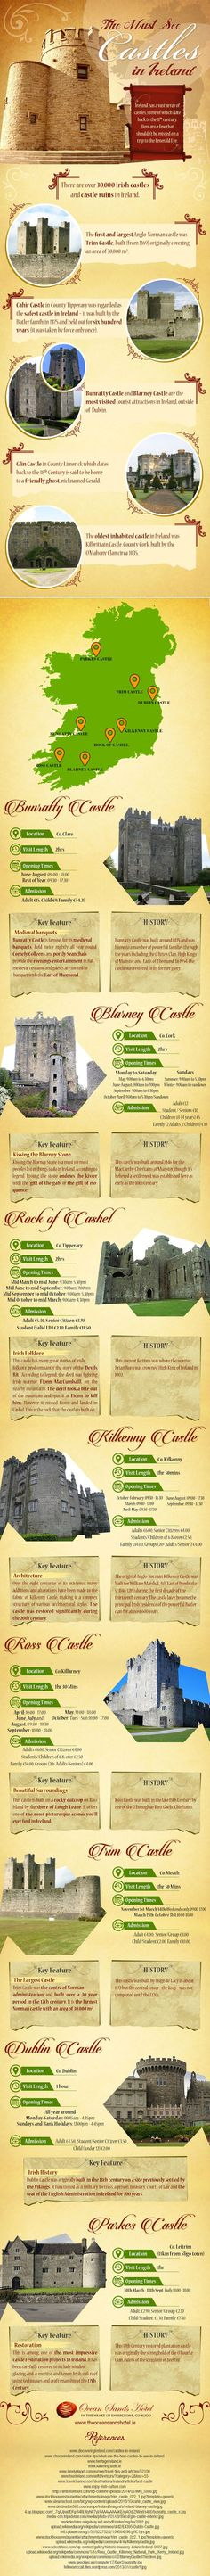 Most popular castles in Ireland